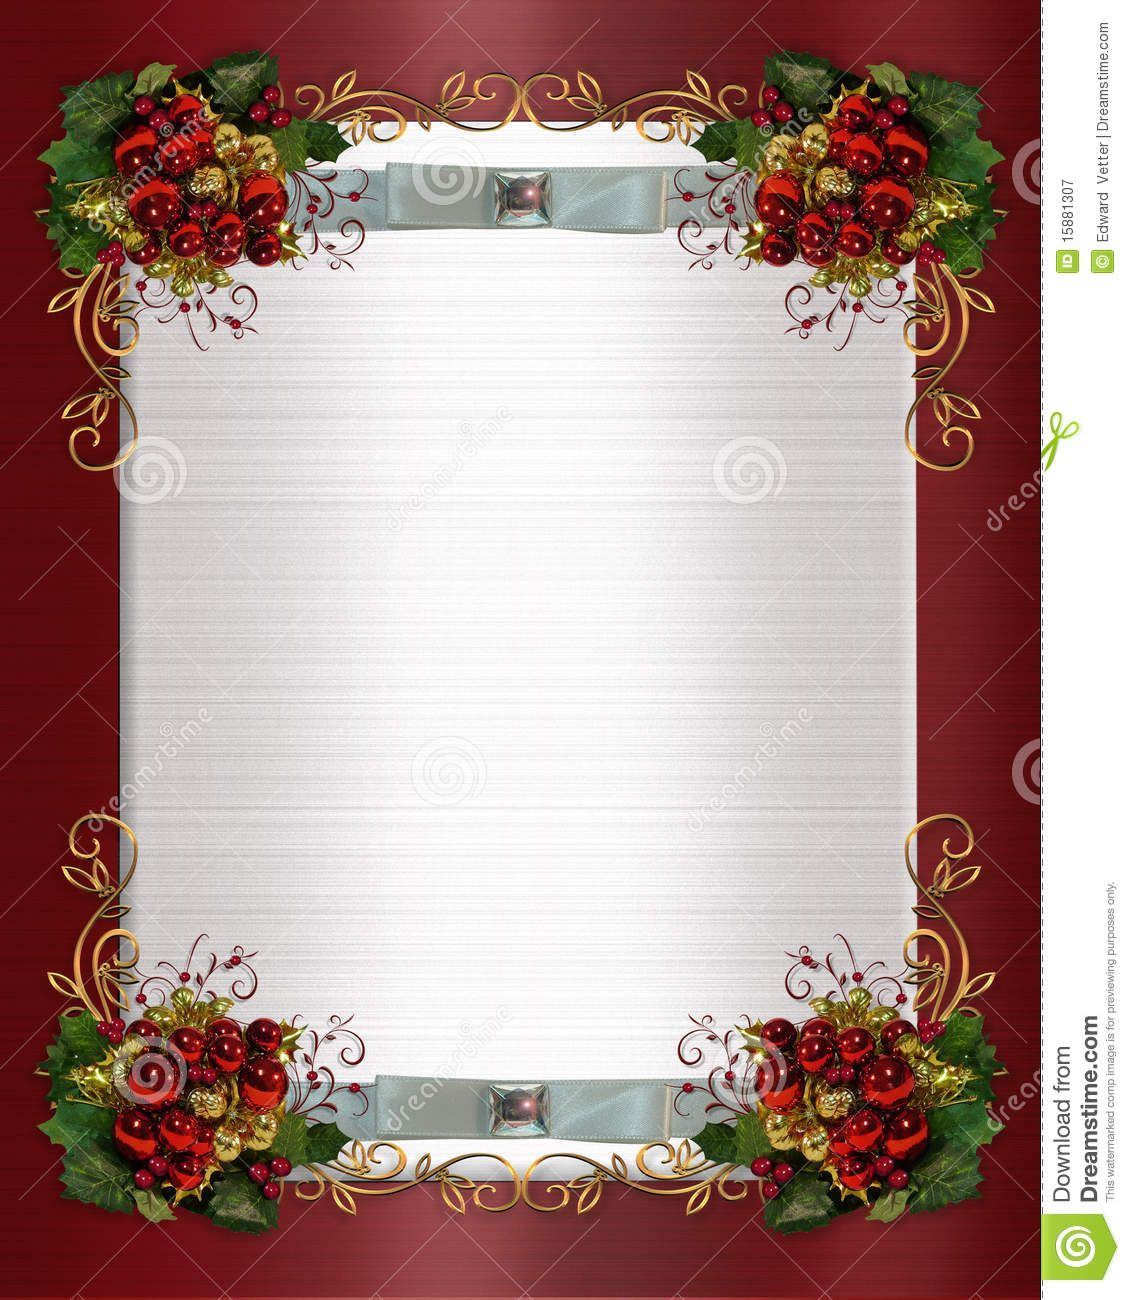 christmas or winter wedding border royalty stock photography awesome christmas invite templates ing design printable for your party excellent party invitation text art and pictures